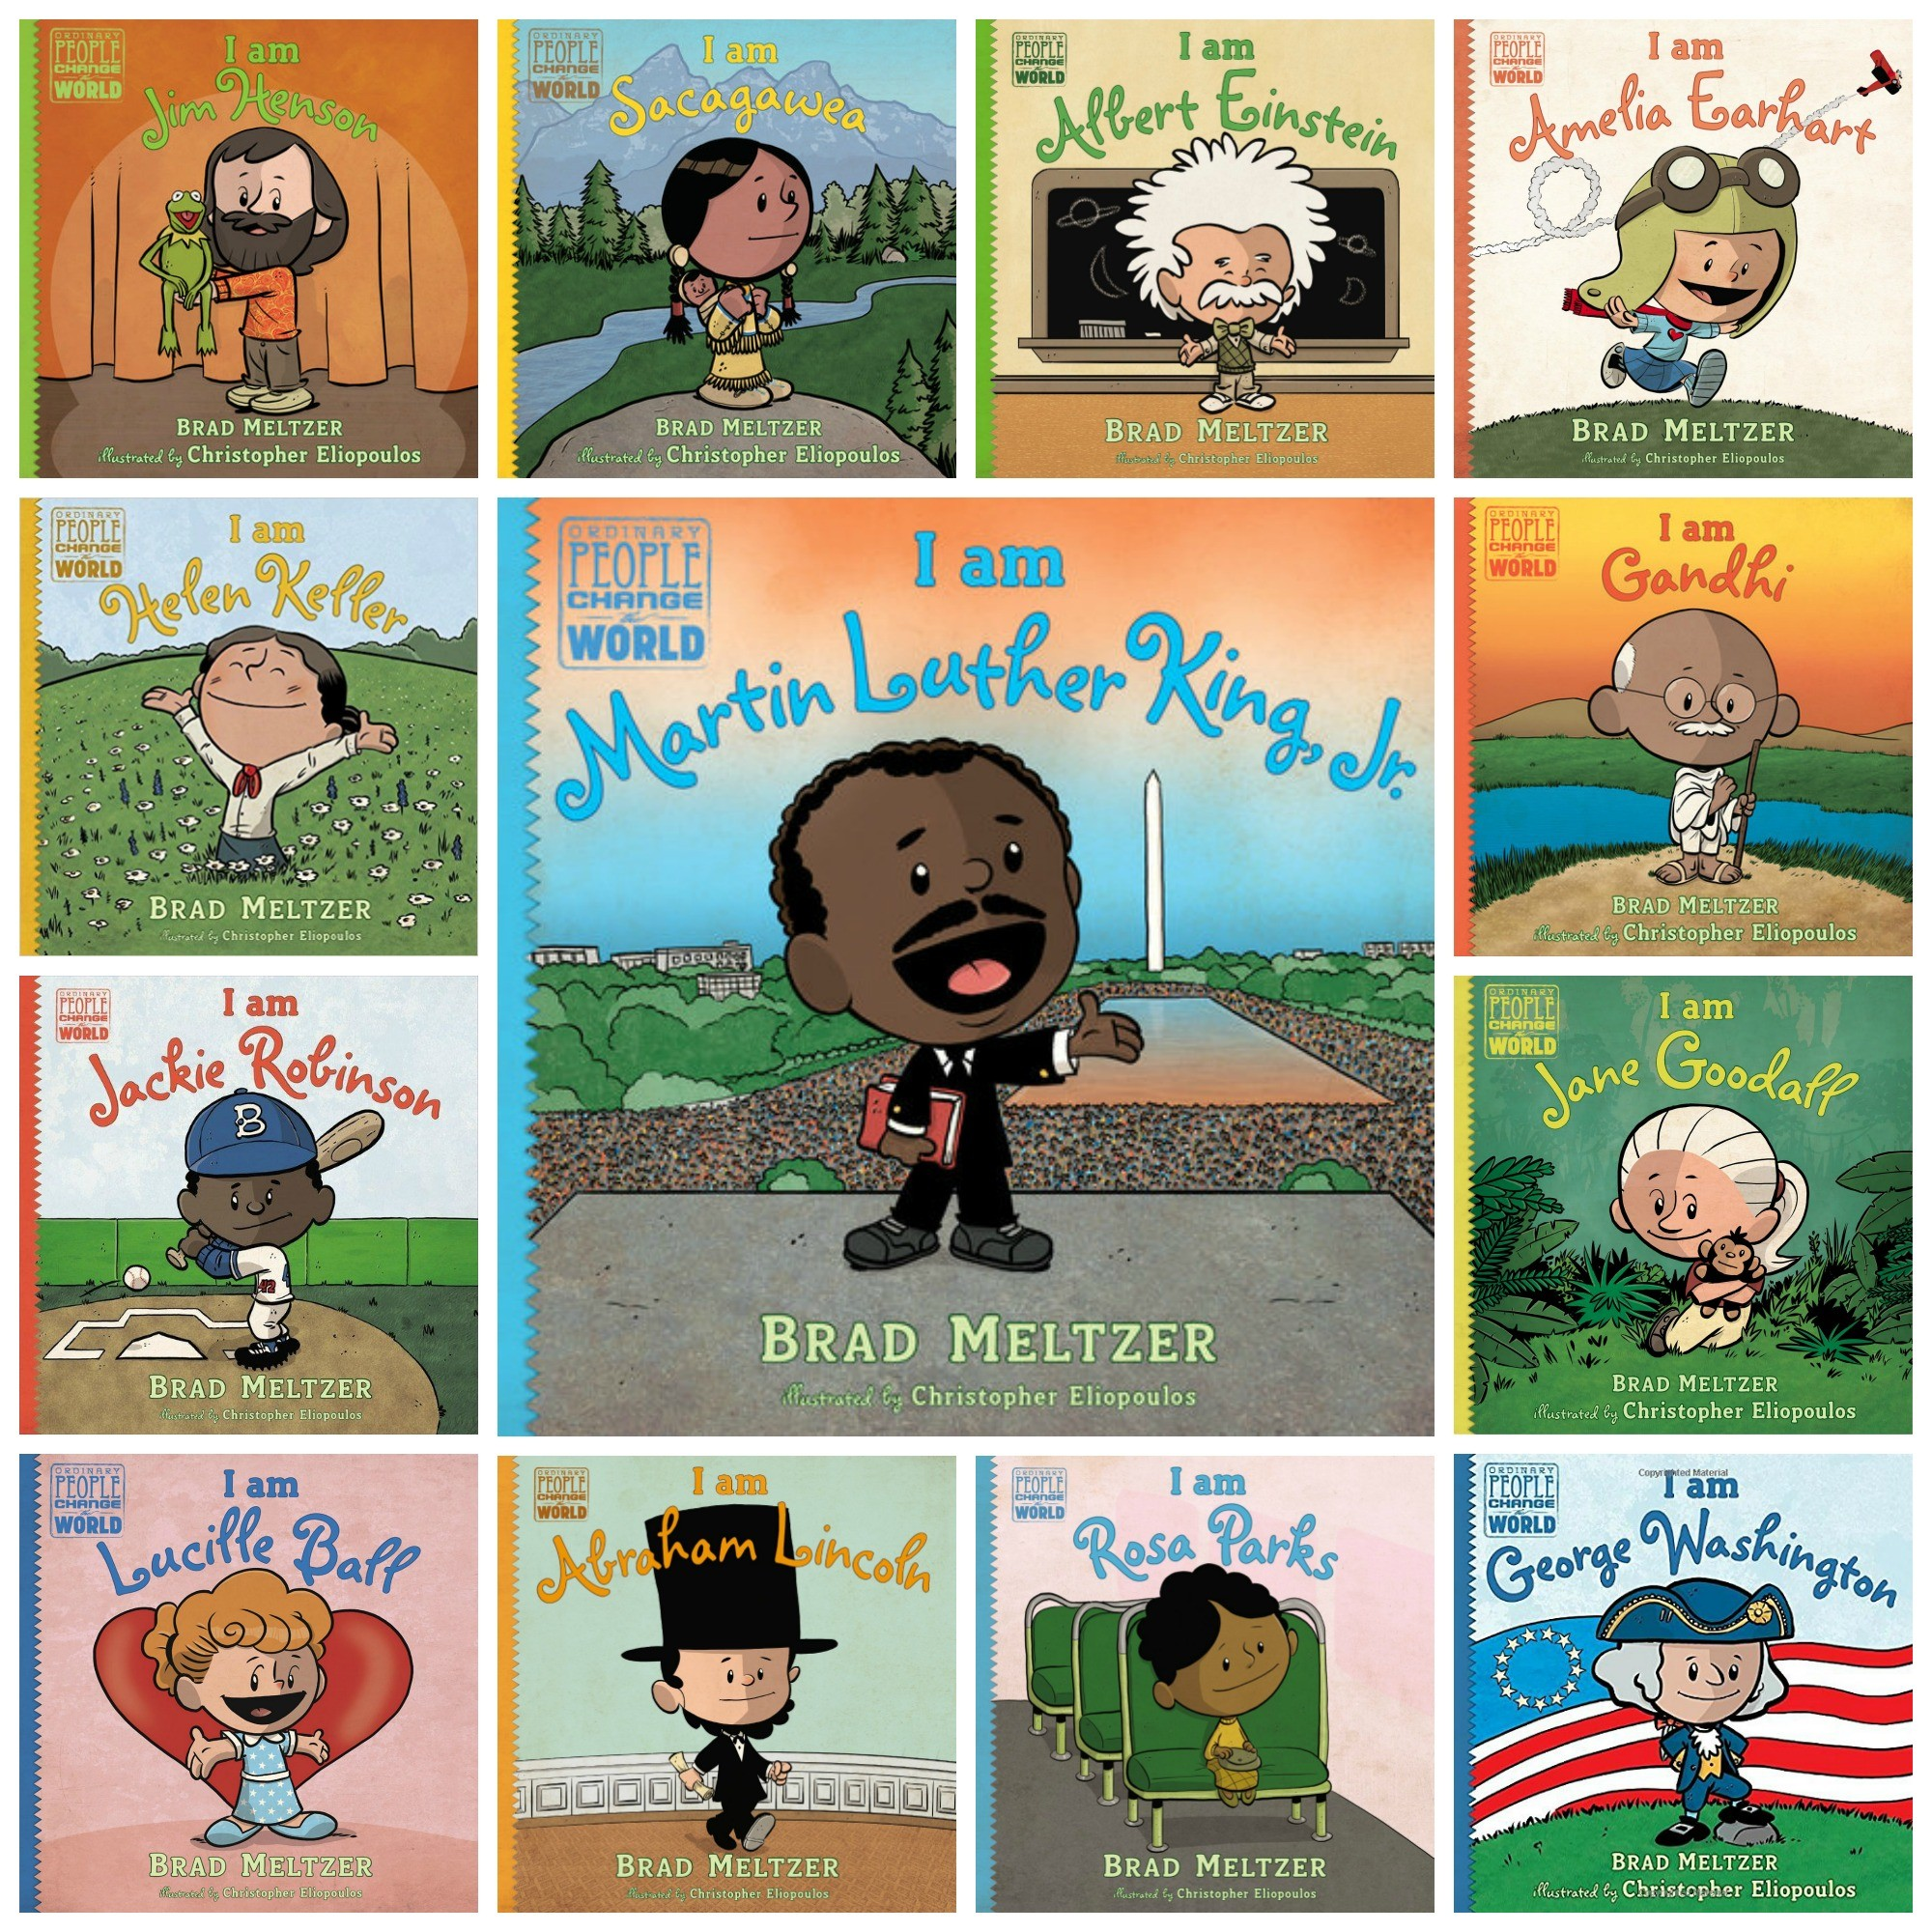 Empowering books EVERY child should read